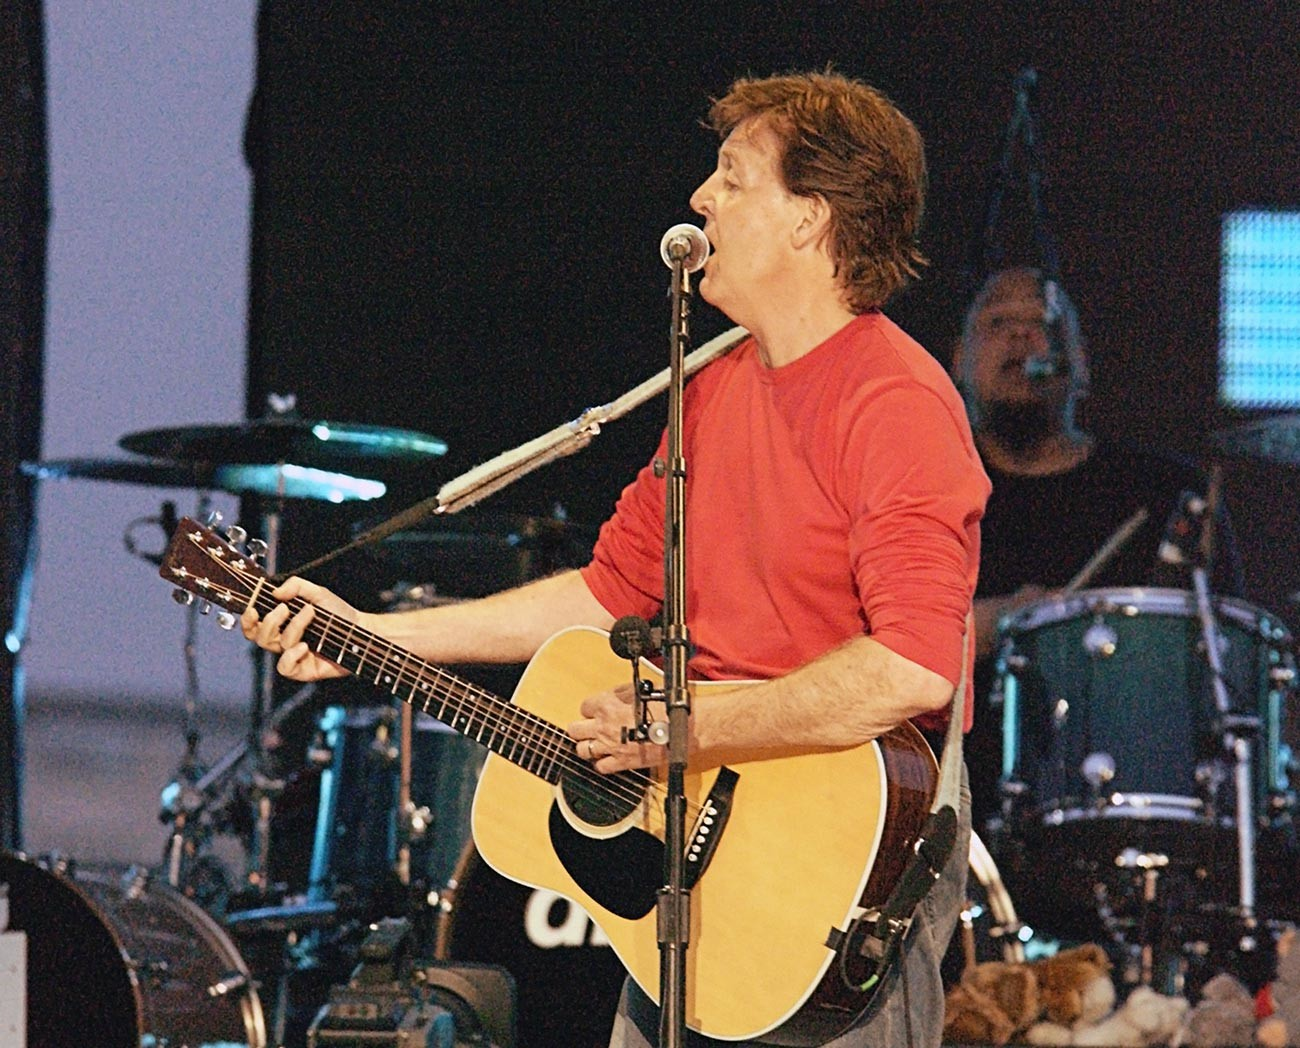 McCartney's concert in Moscow